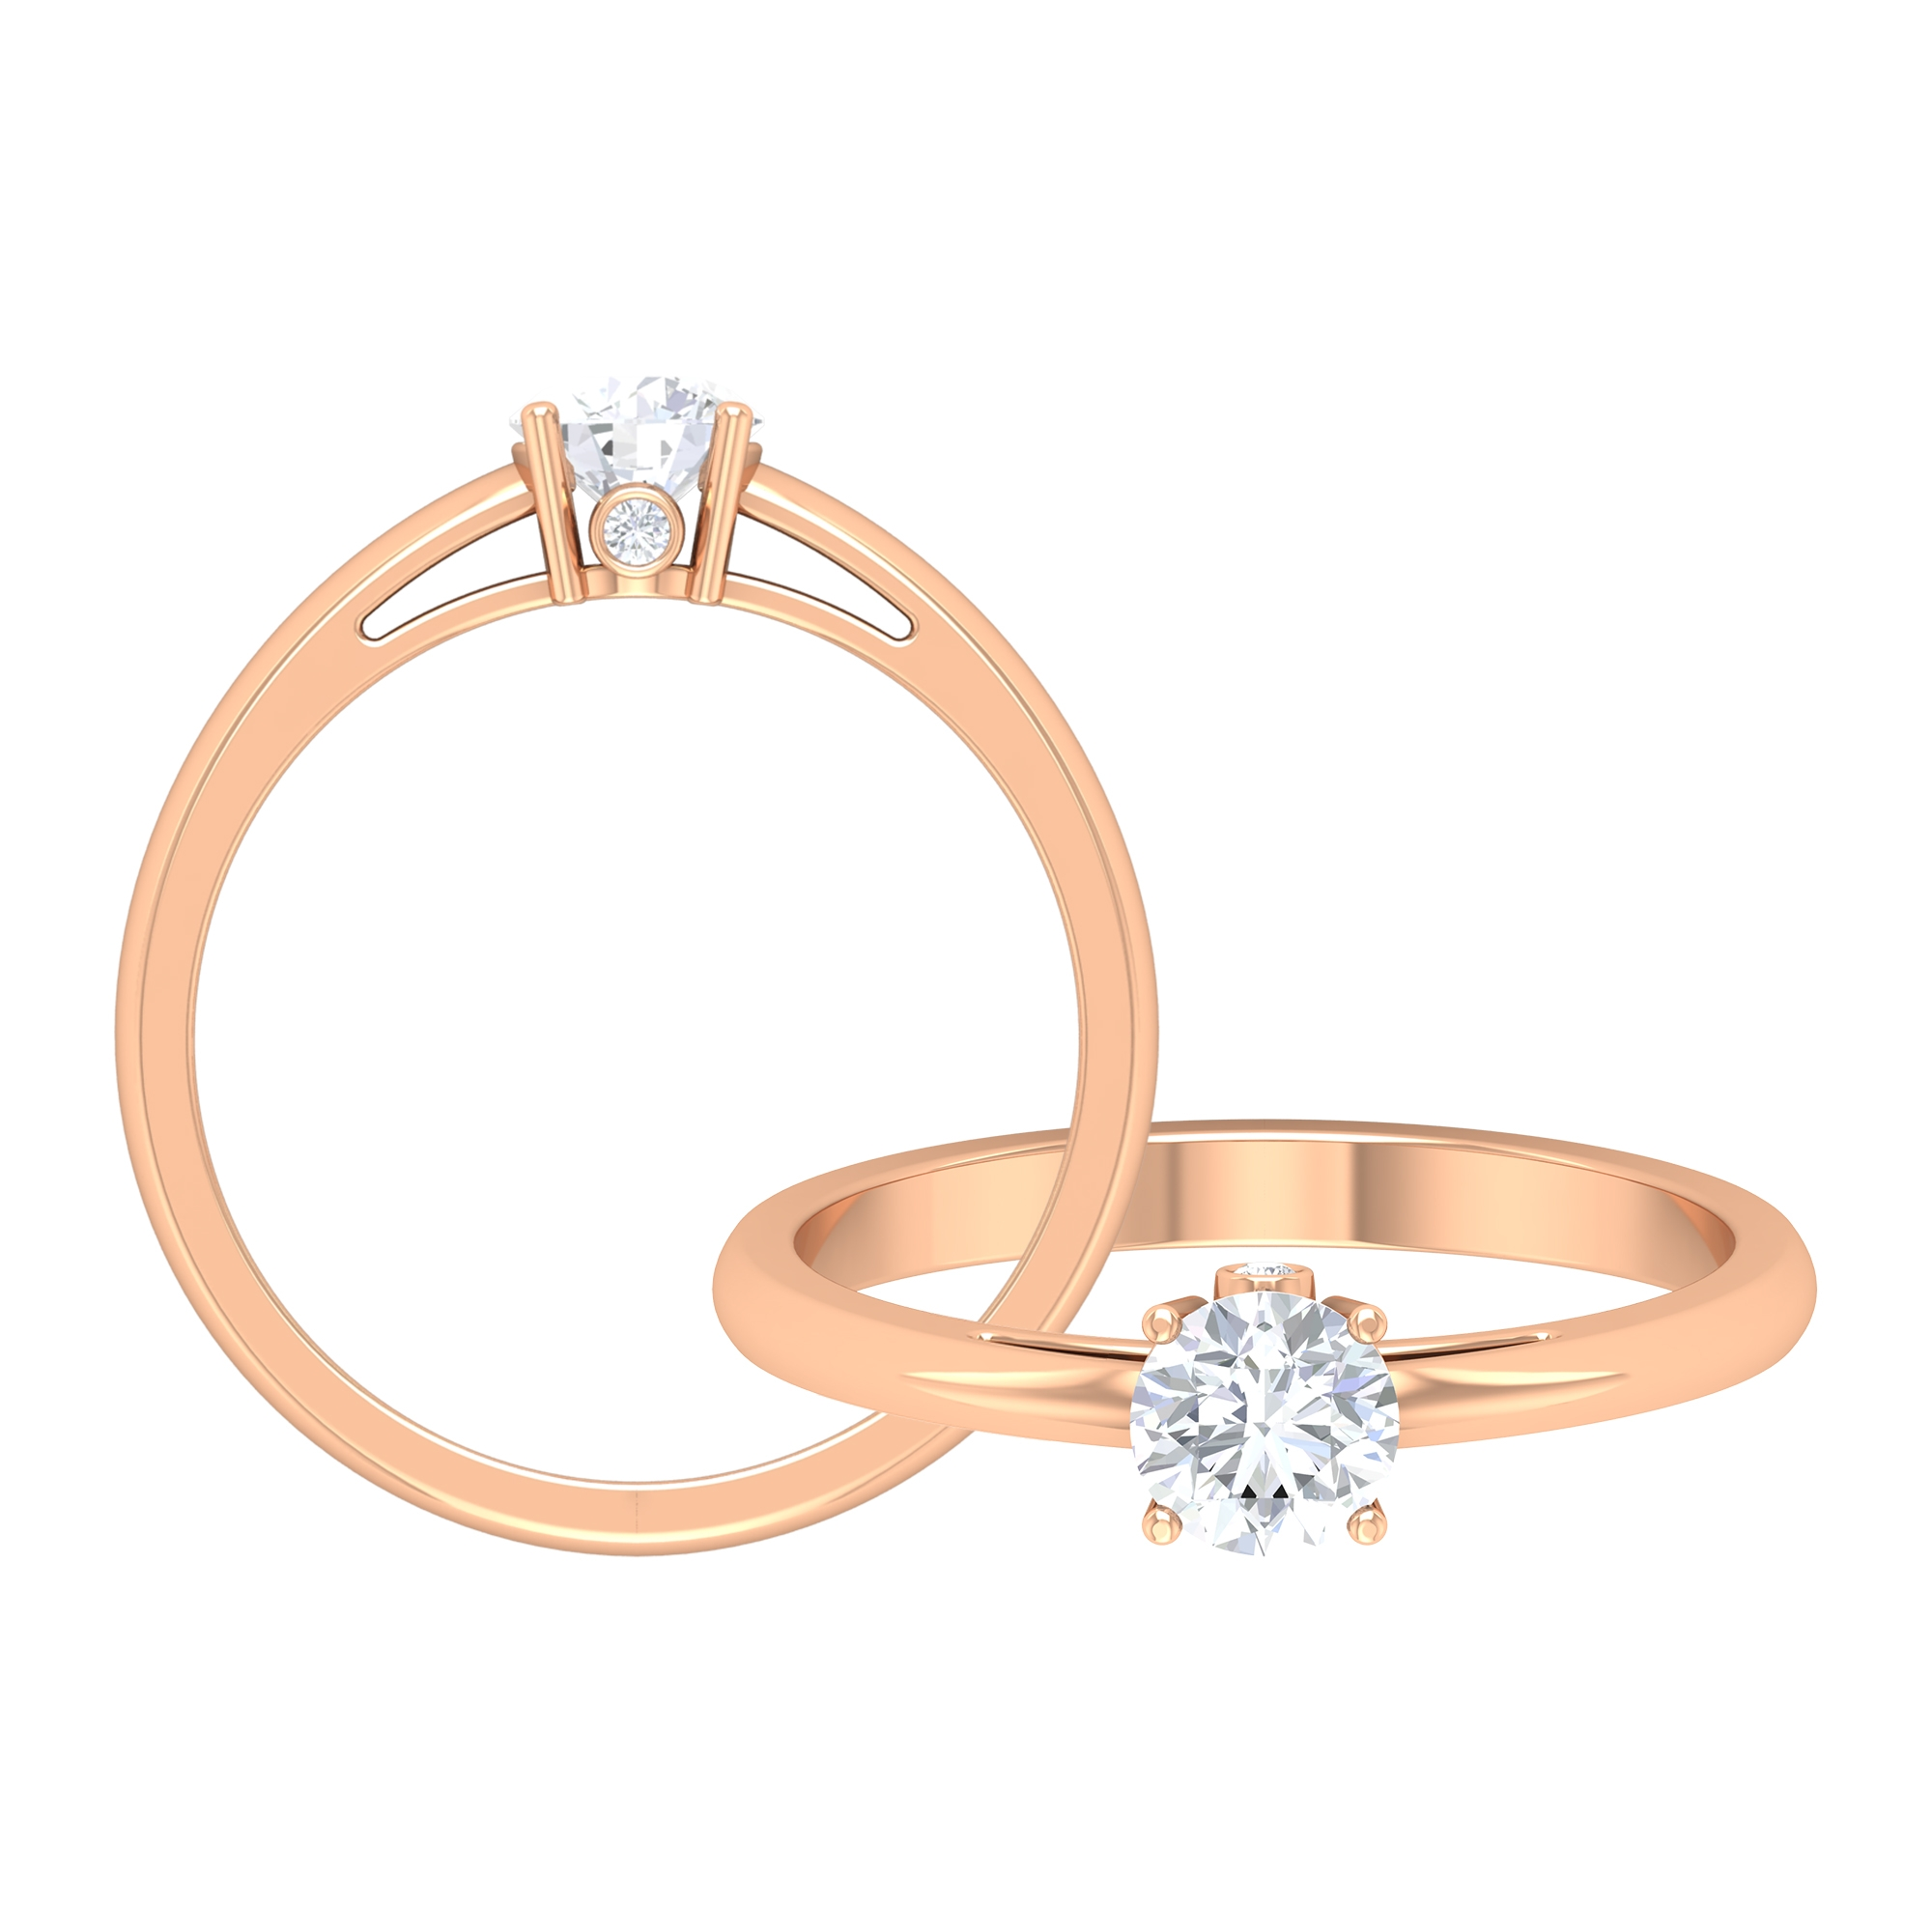 1/2 CT Round Cut Diamond Solitaire Ring in Prong Setting and Surprise Style